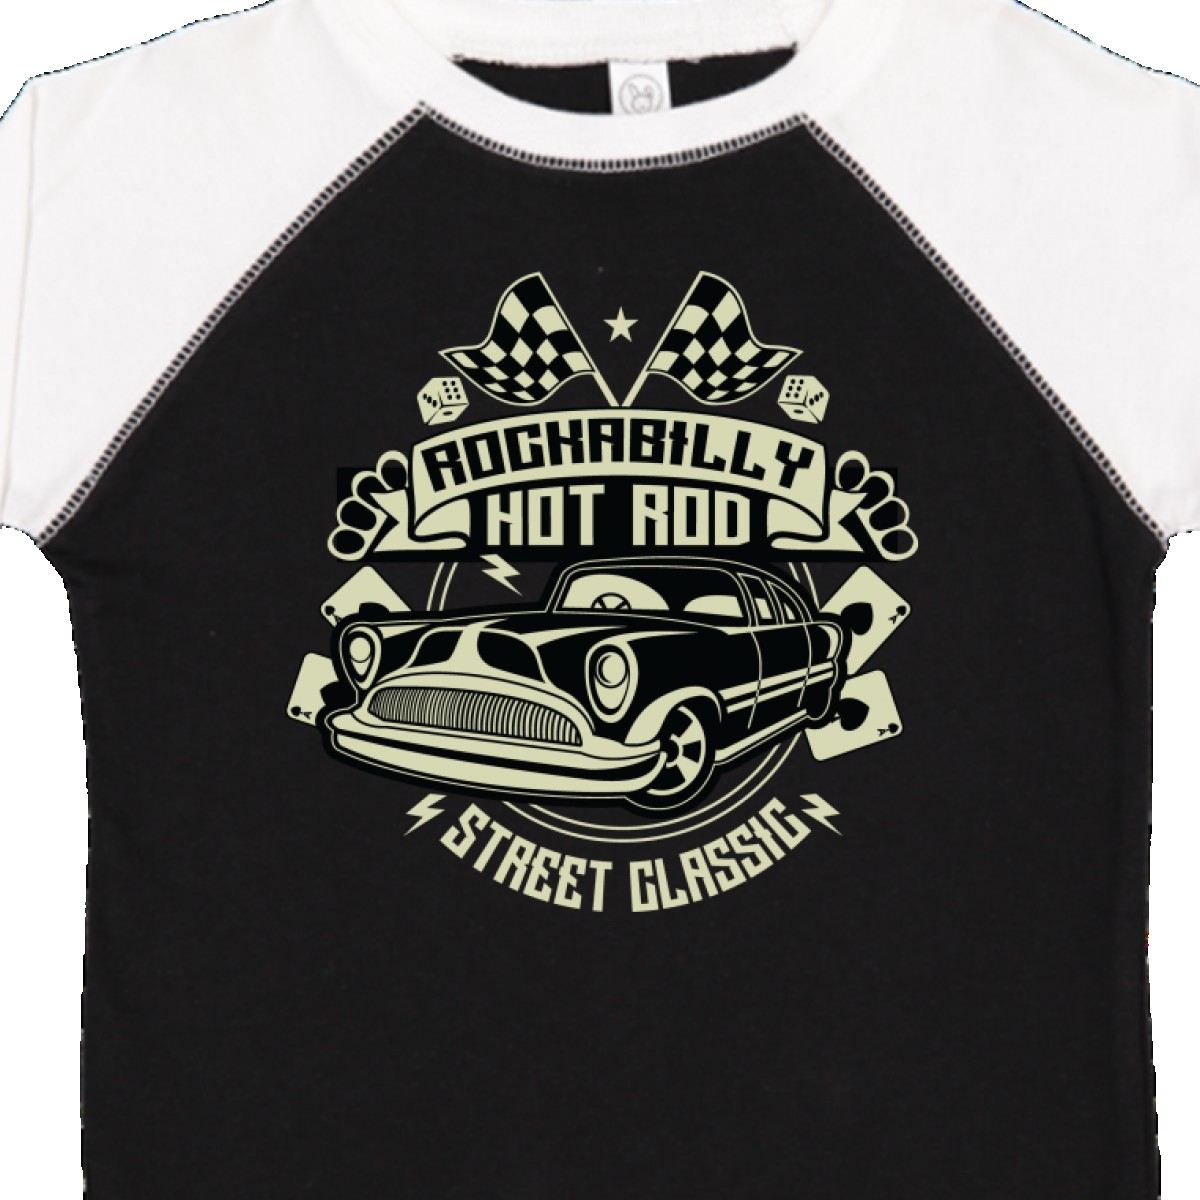 Inktastic-Rockabilly-Hotrod-Toddler-T-Shirt-Hot-Rod-Vintage-Car-Racing-Street thumbnail 6